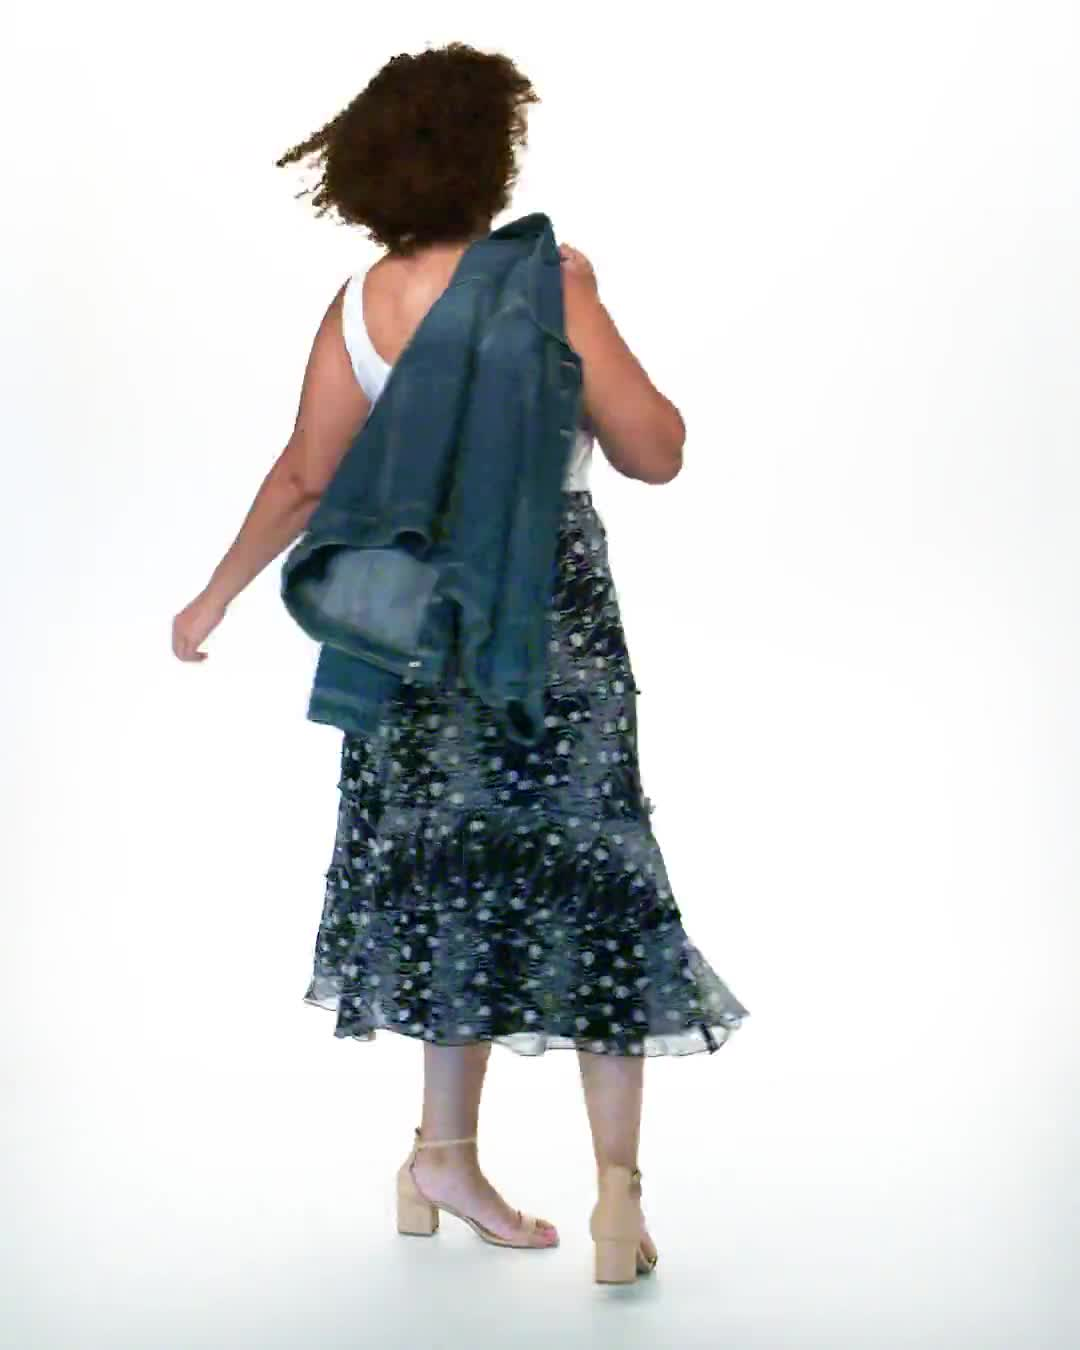 Bias Cut 4 Tiered Elastic Waist Pull On Skirt - Video